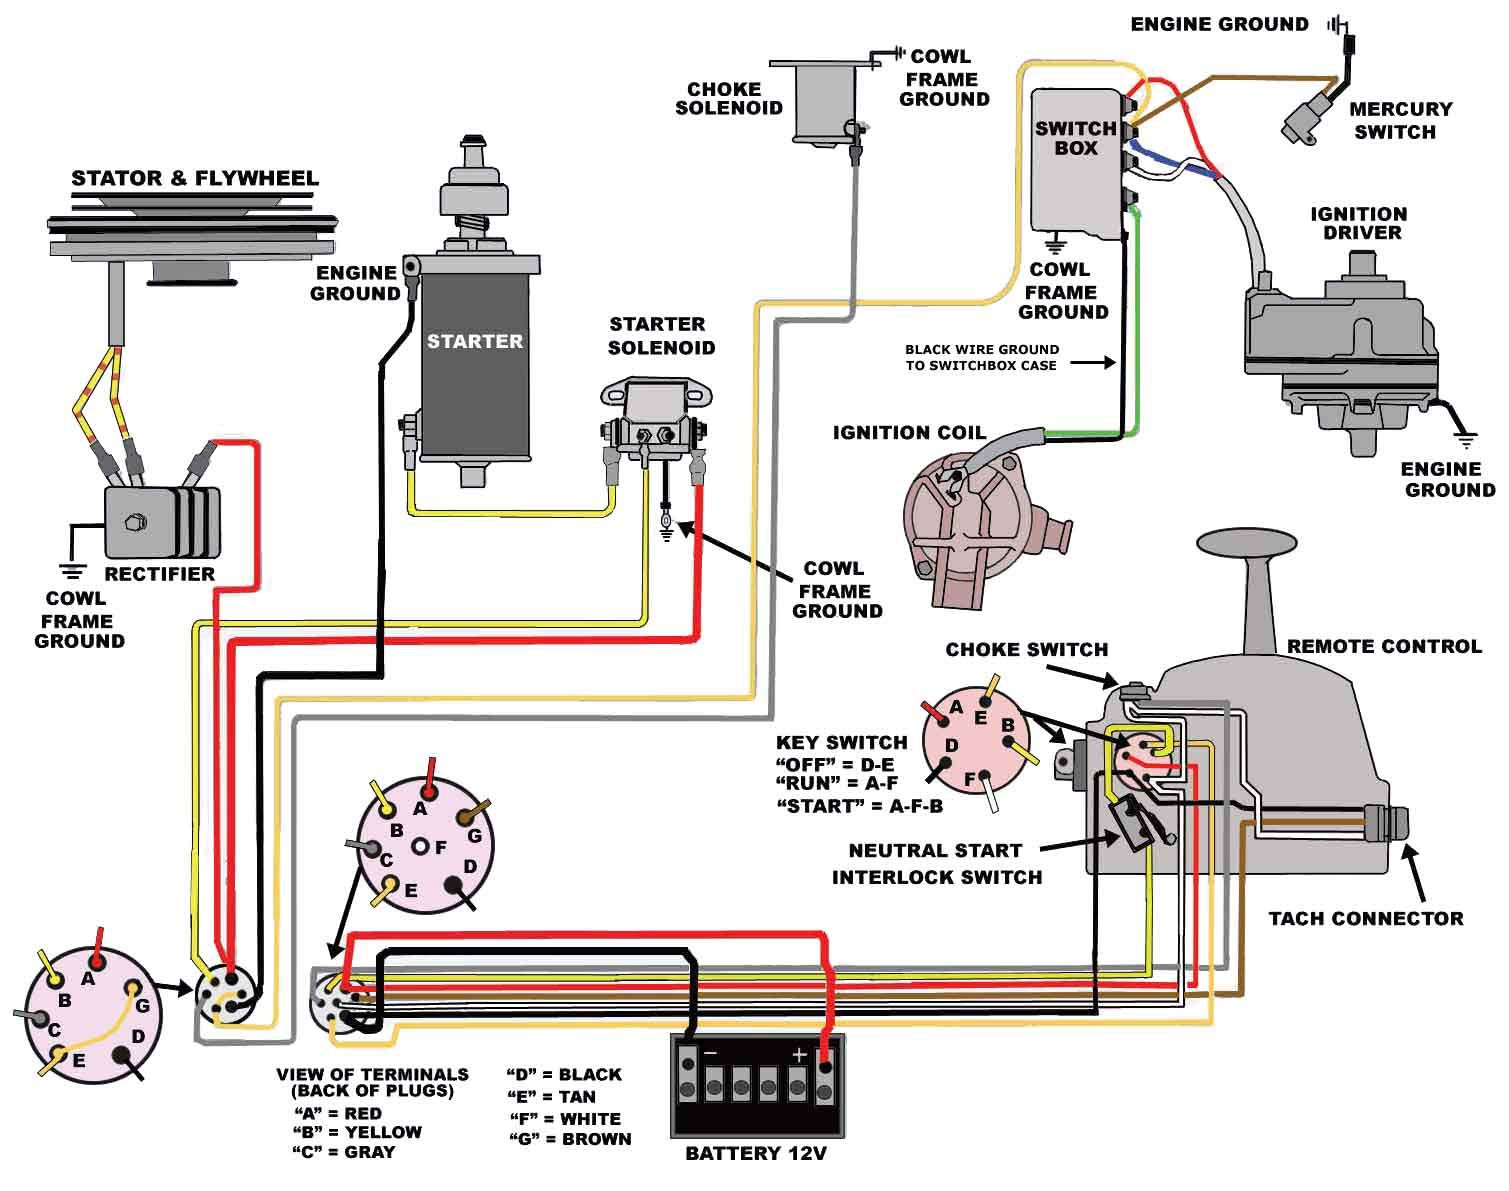 13cfb2d962bcd0c03103625817b7d51d mercury outboard wiring diagram diagram pinterest mercury mercury outboard wiring harness schematic at bakdesigns.co